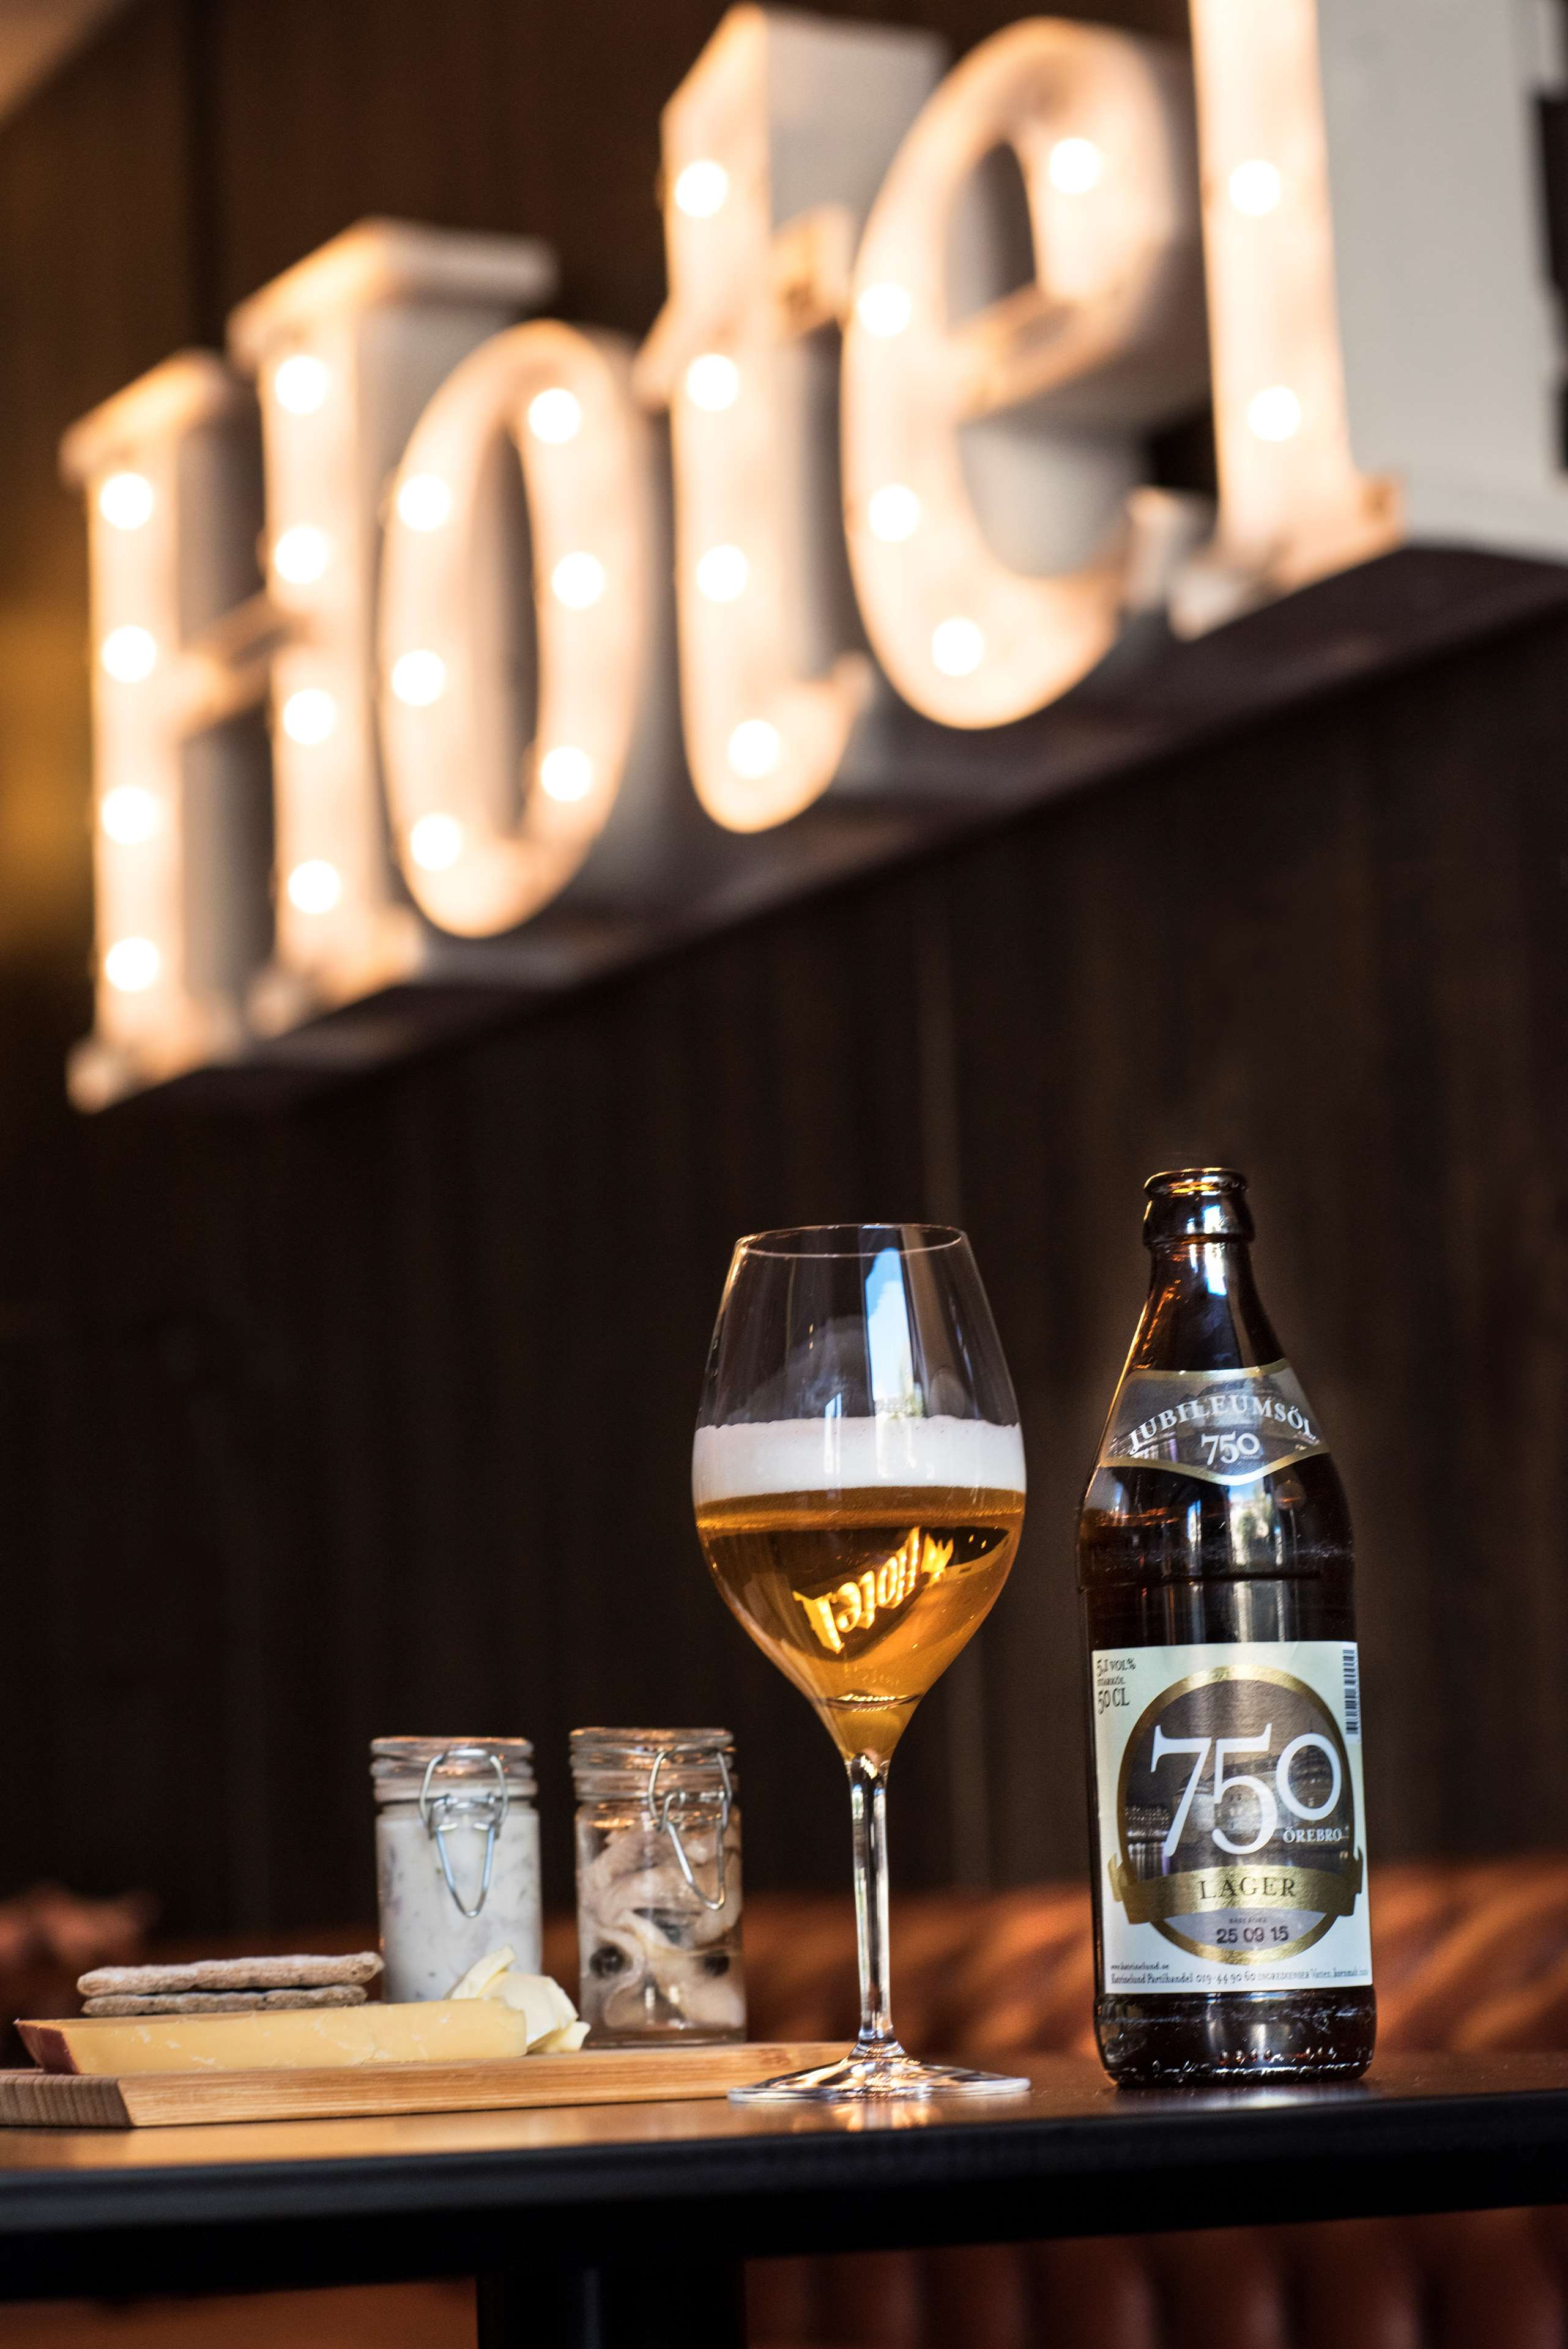 Winebar - Local Beer Selections